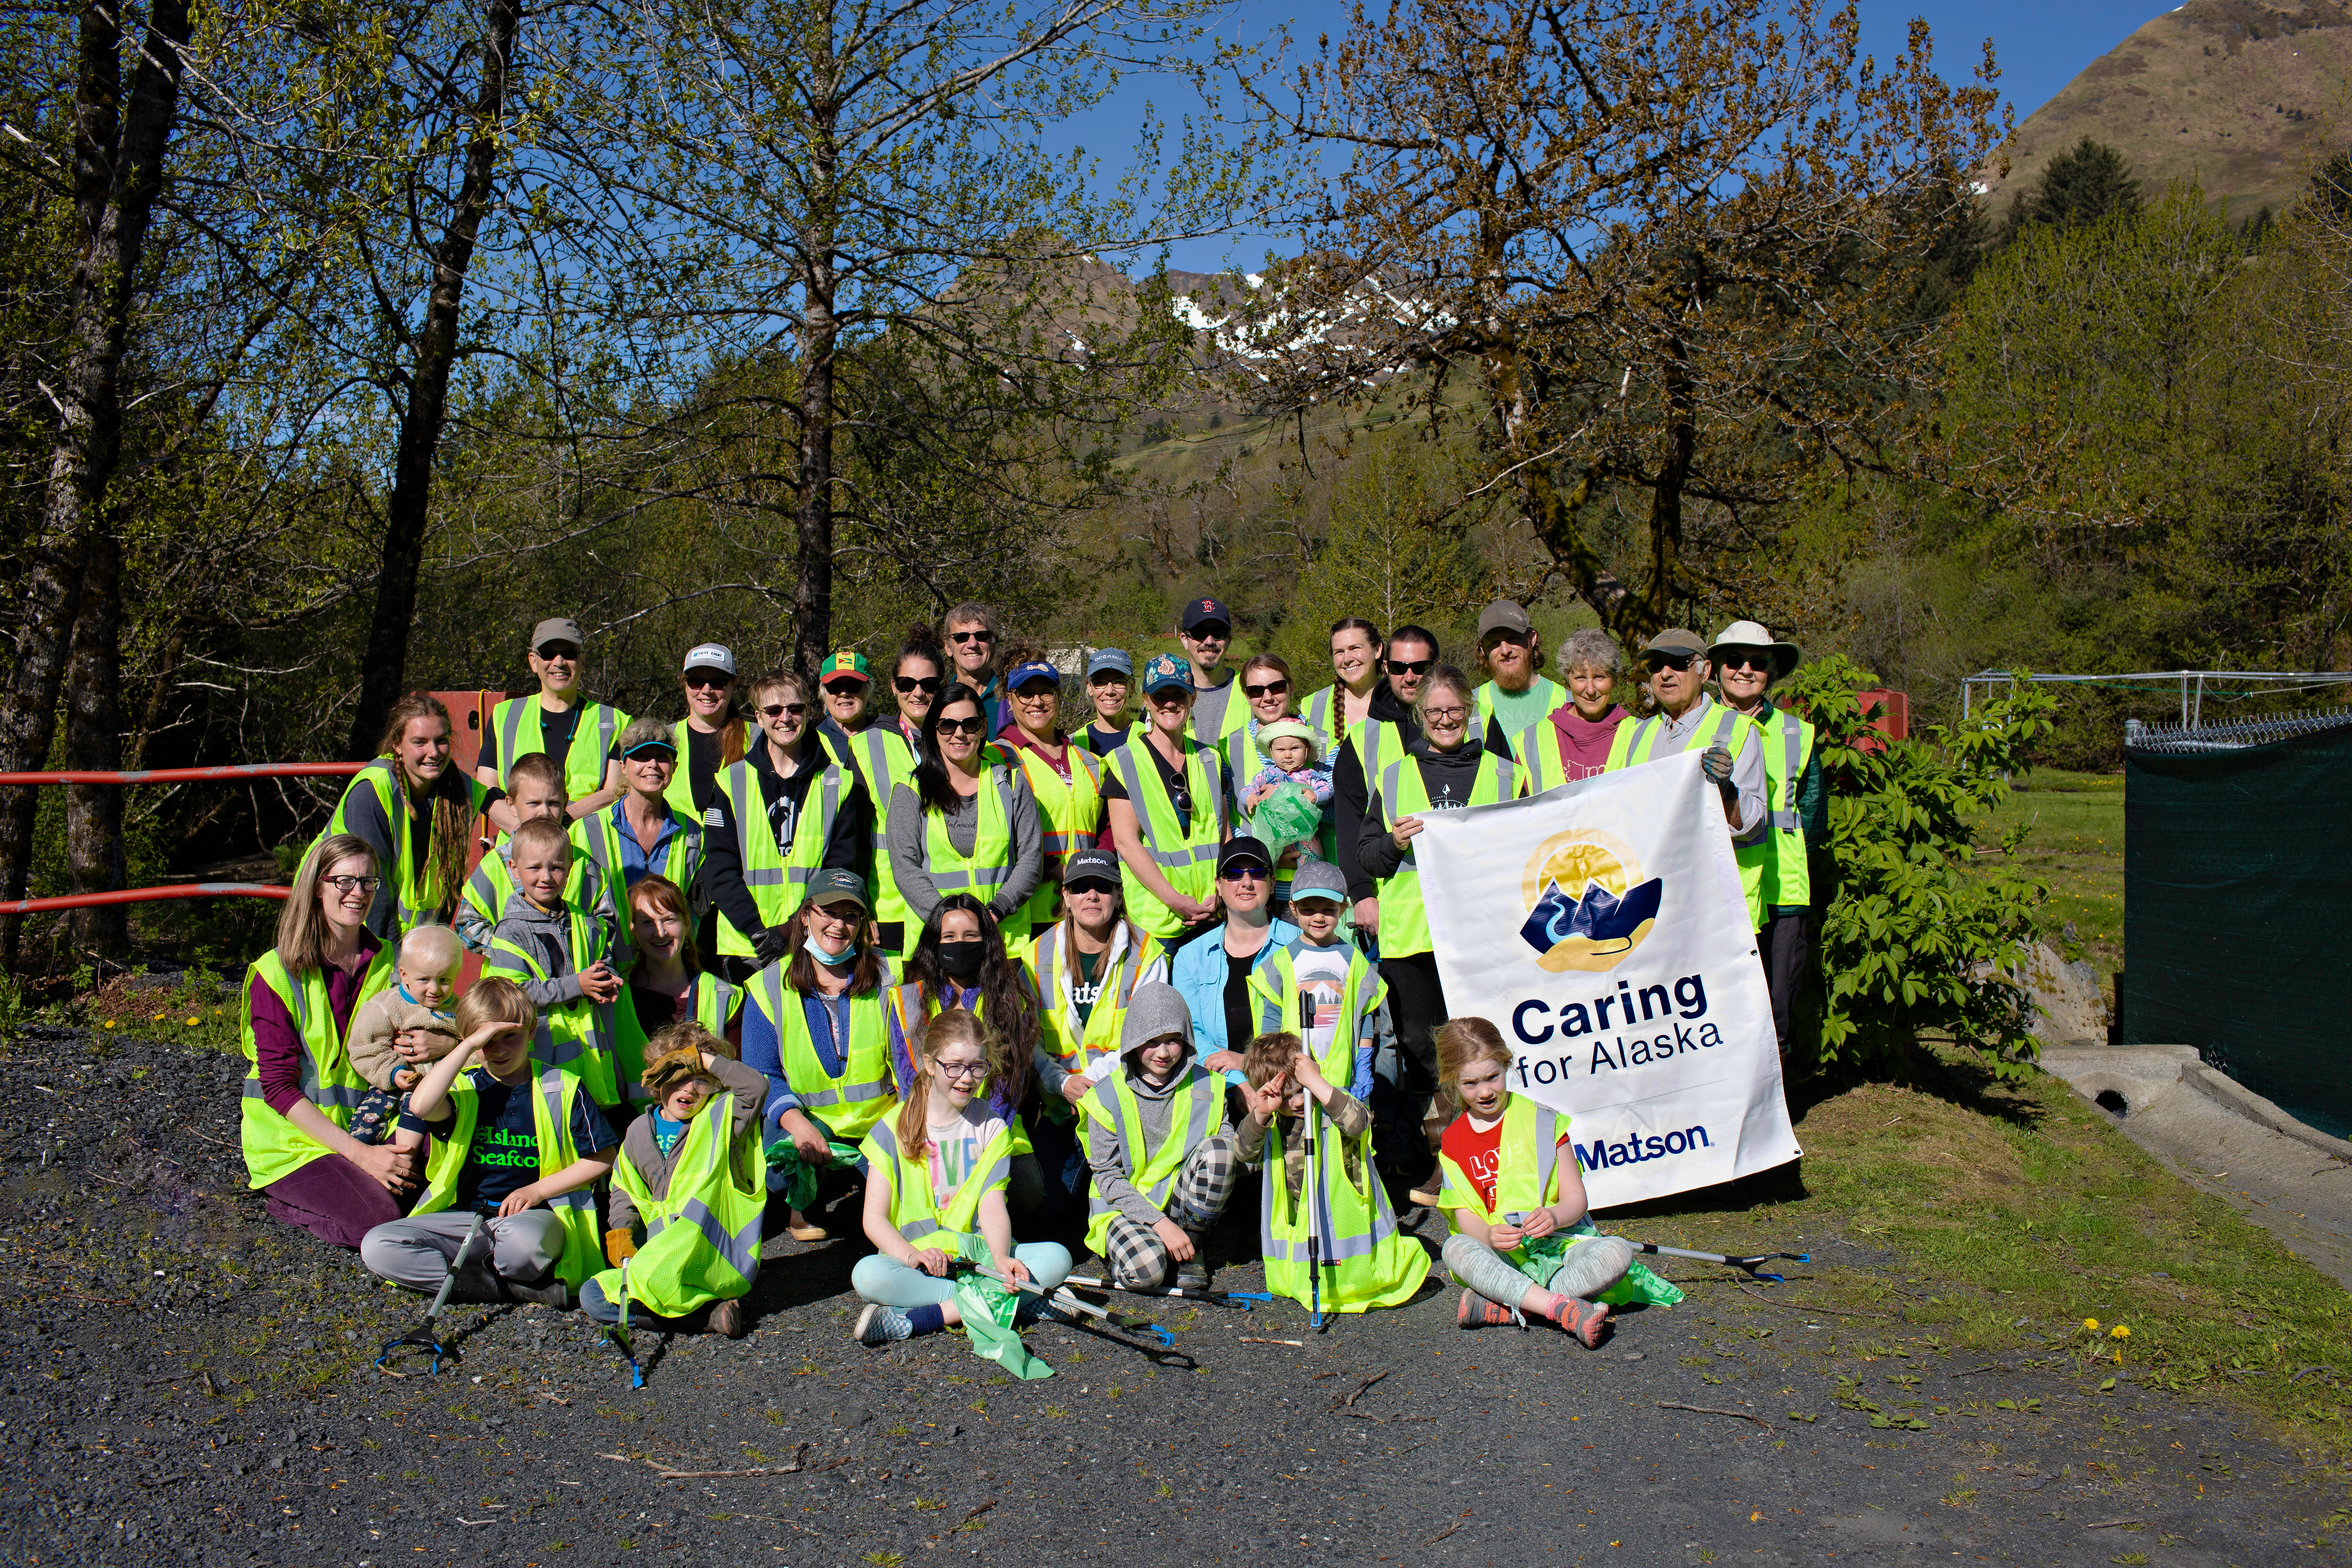 Volunteers wearing their yellow safety vests pose for a group picture with a Caring For Alaska banner.